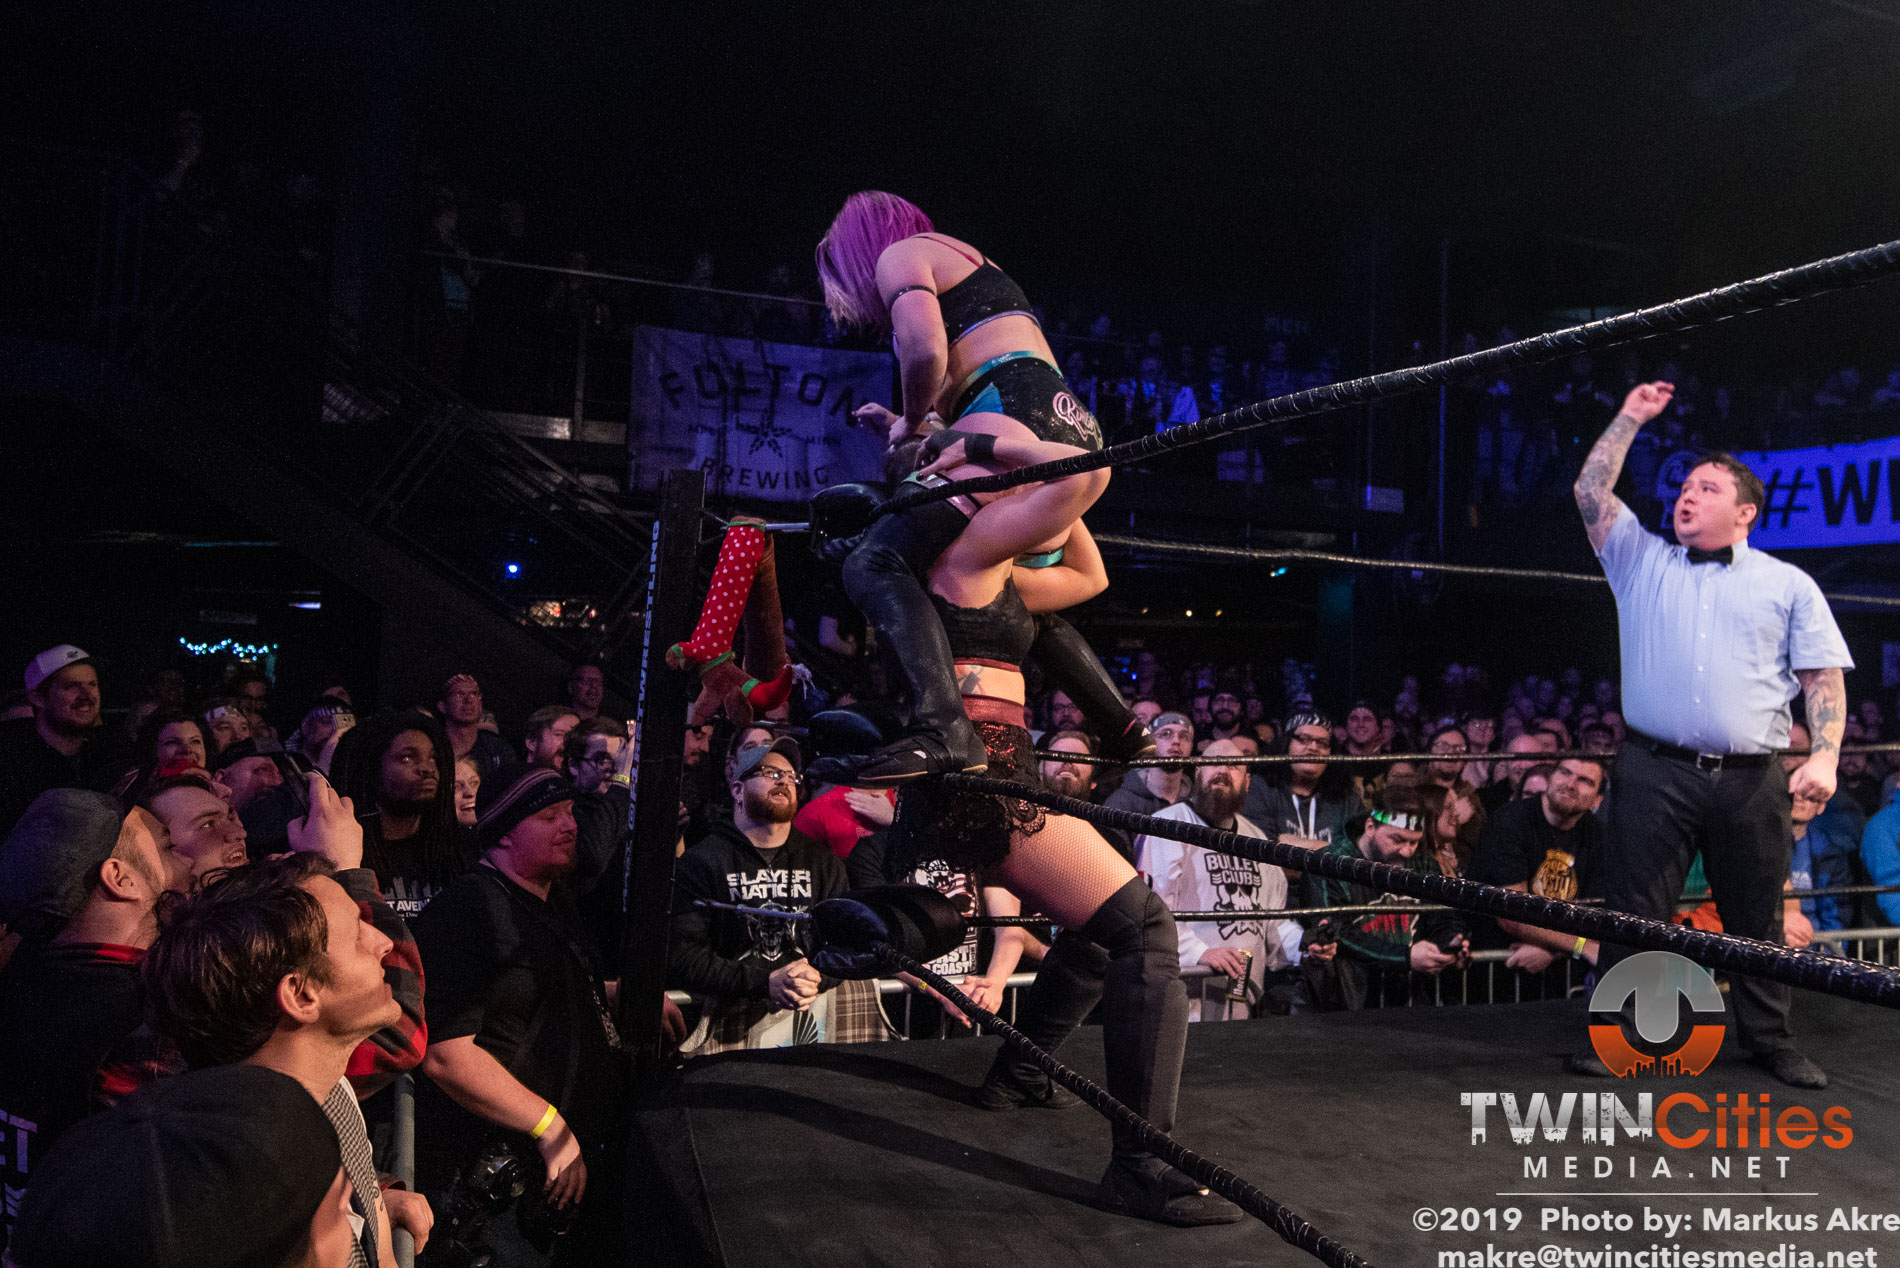 Wrestlepalooza - Match 2-4